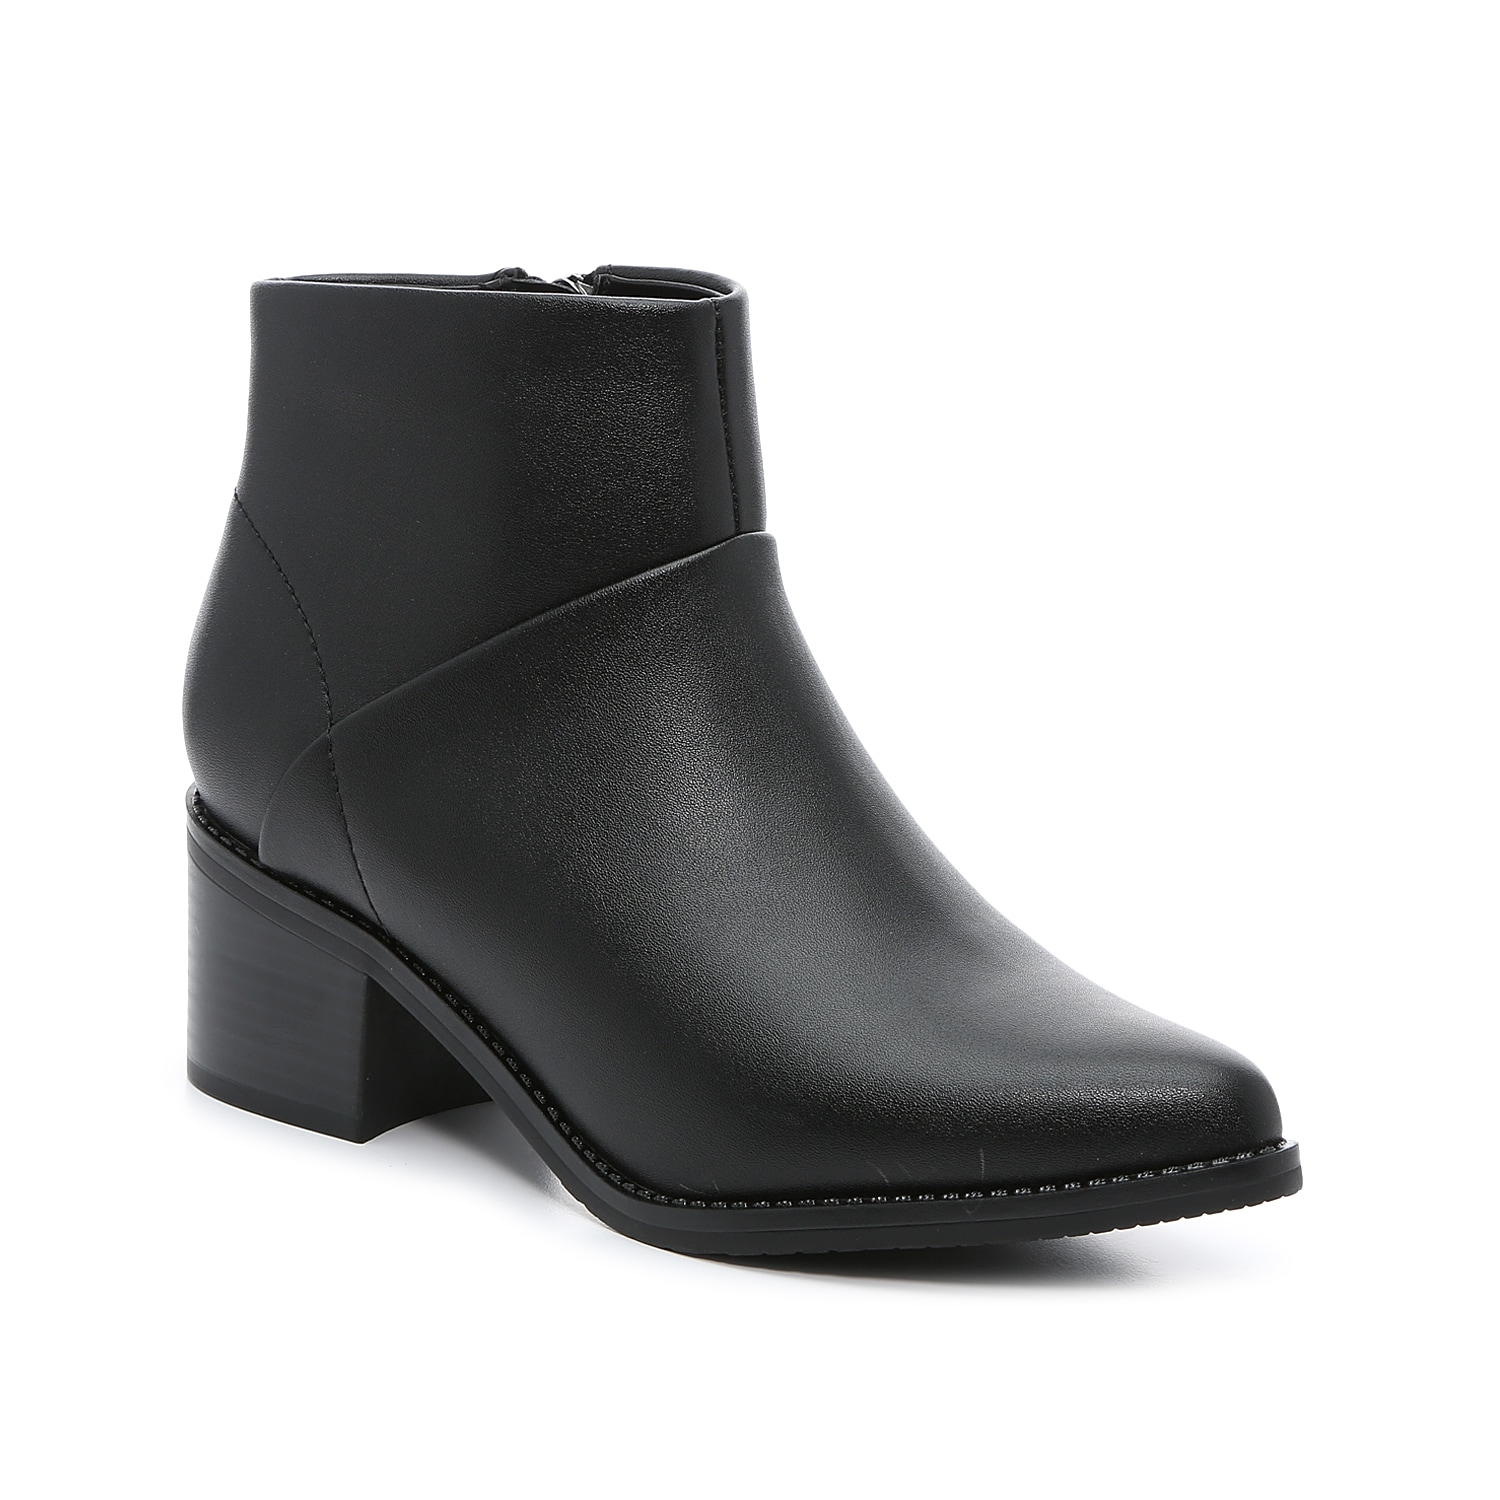 The Eileen bootie from Blondo will keep your shoe collection right up to date. This ankle boot is fashioned with a waterproof-treated leather upper and a long, pointed toe that\\\'s arched slighly upwards for western flair. The mid-height block heel makes this pair easily walkable. Click here for Boot Measuring Guide.